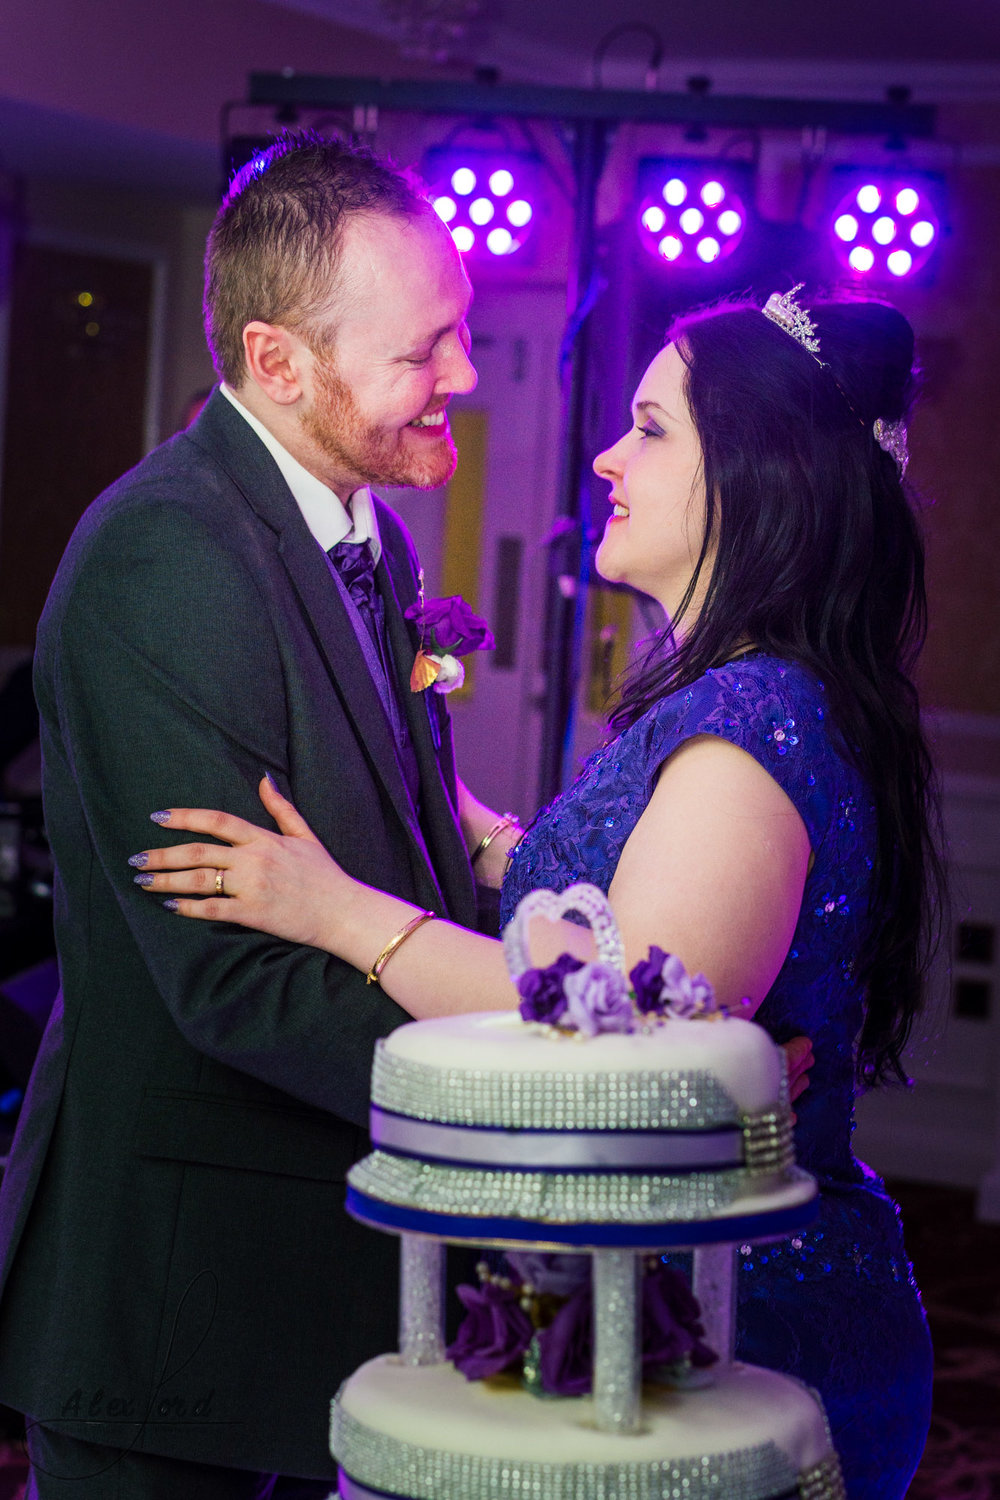 the bride and groom stand behind the wedding cake and pose for a photo